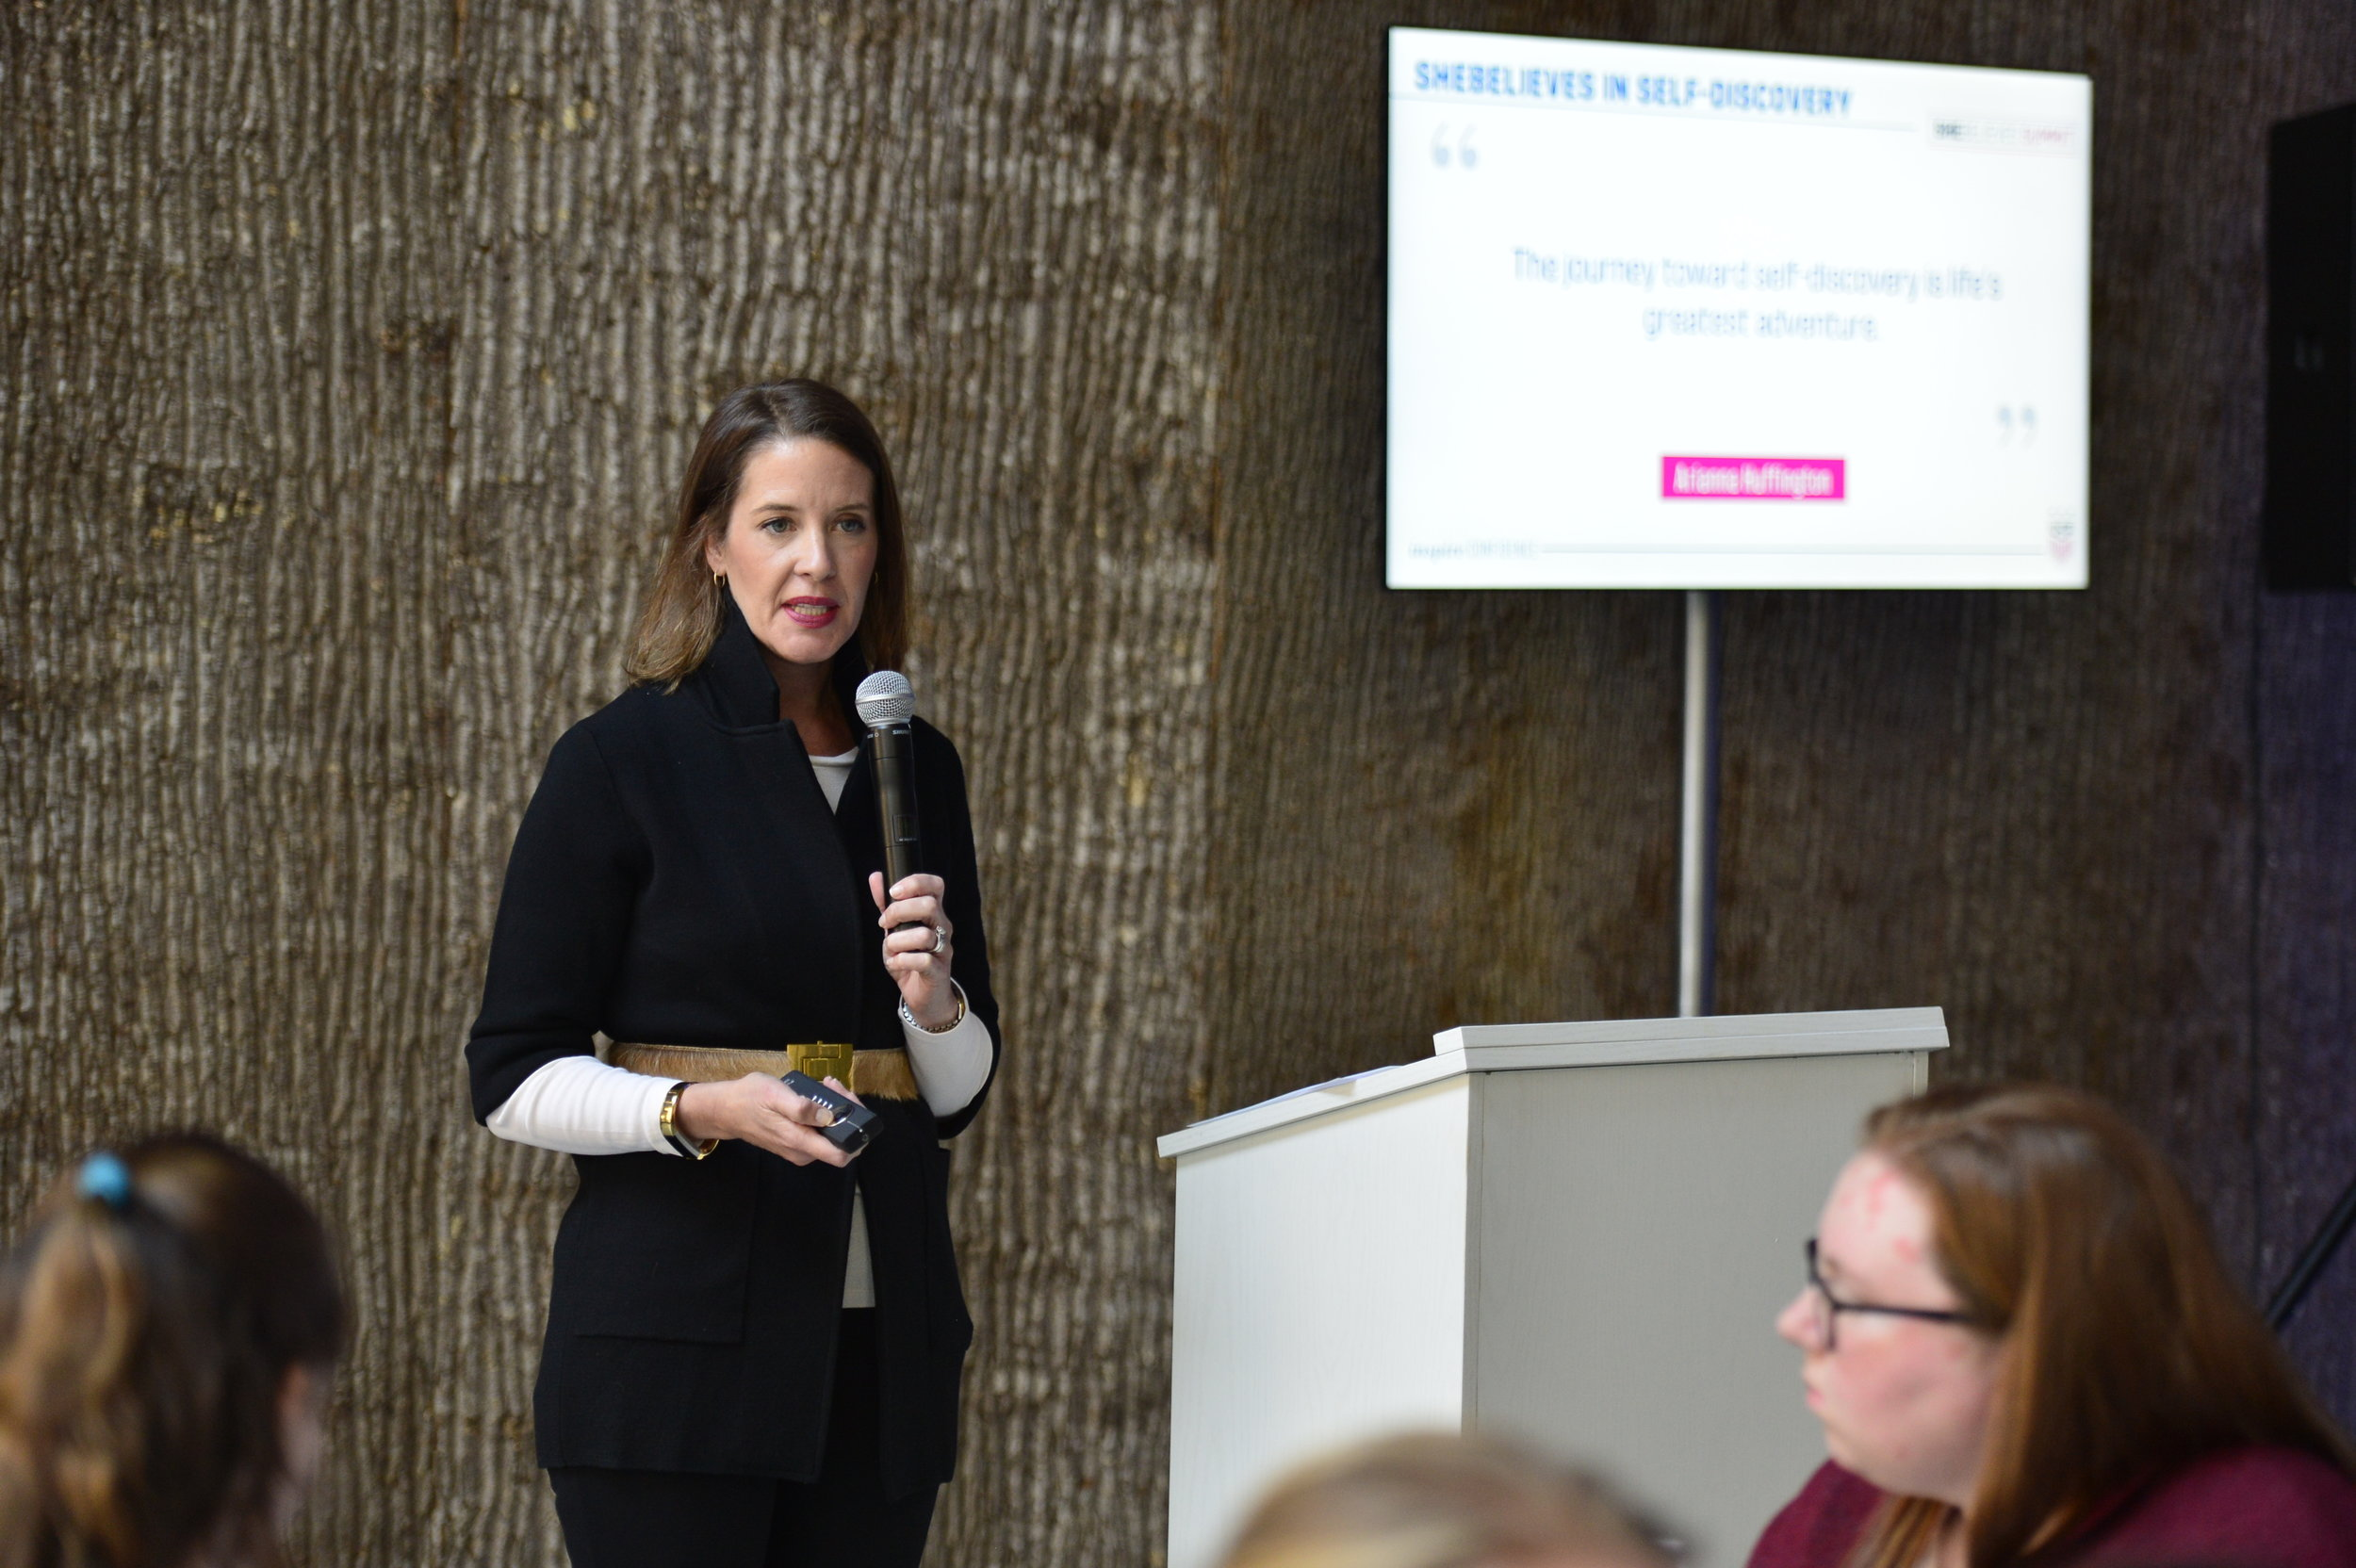 Holly Lindvall, VP of Human Resources and Diversity at NY Mets,speaks about goal setting and mapping in the SheBelieves in Her Abilities breakout session.